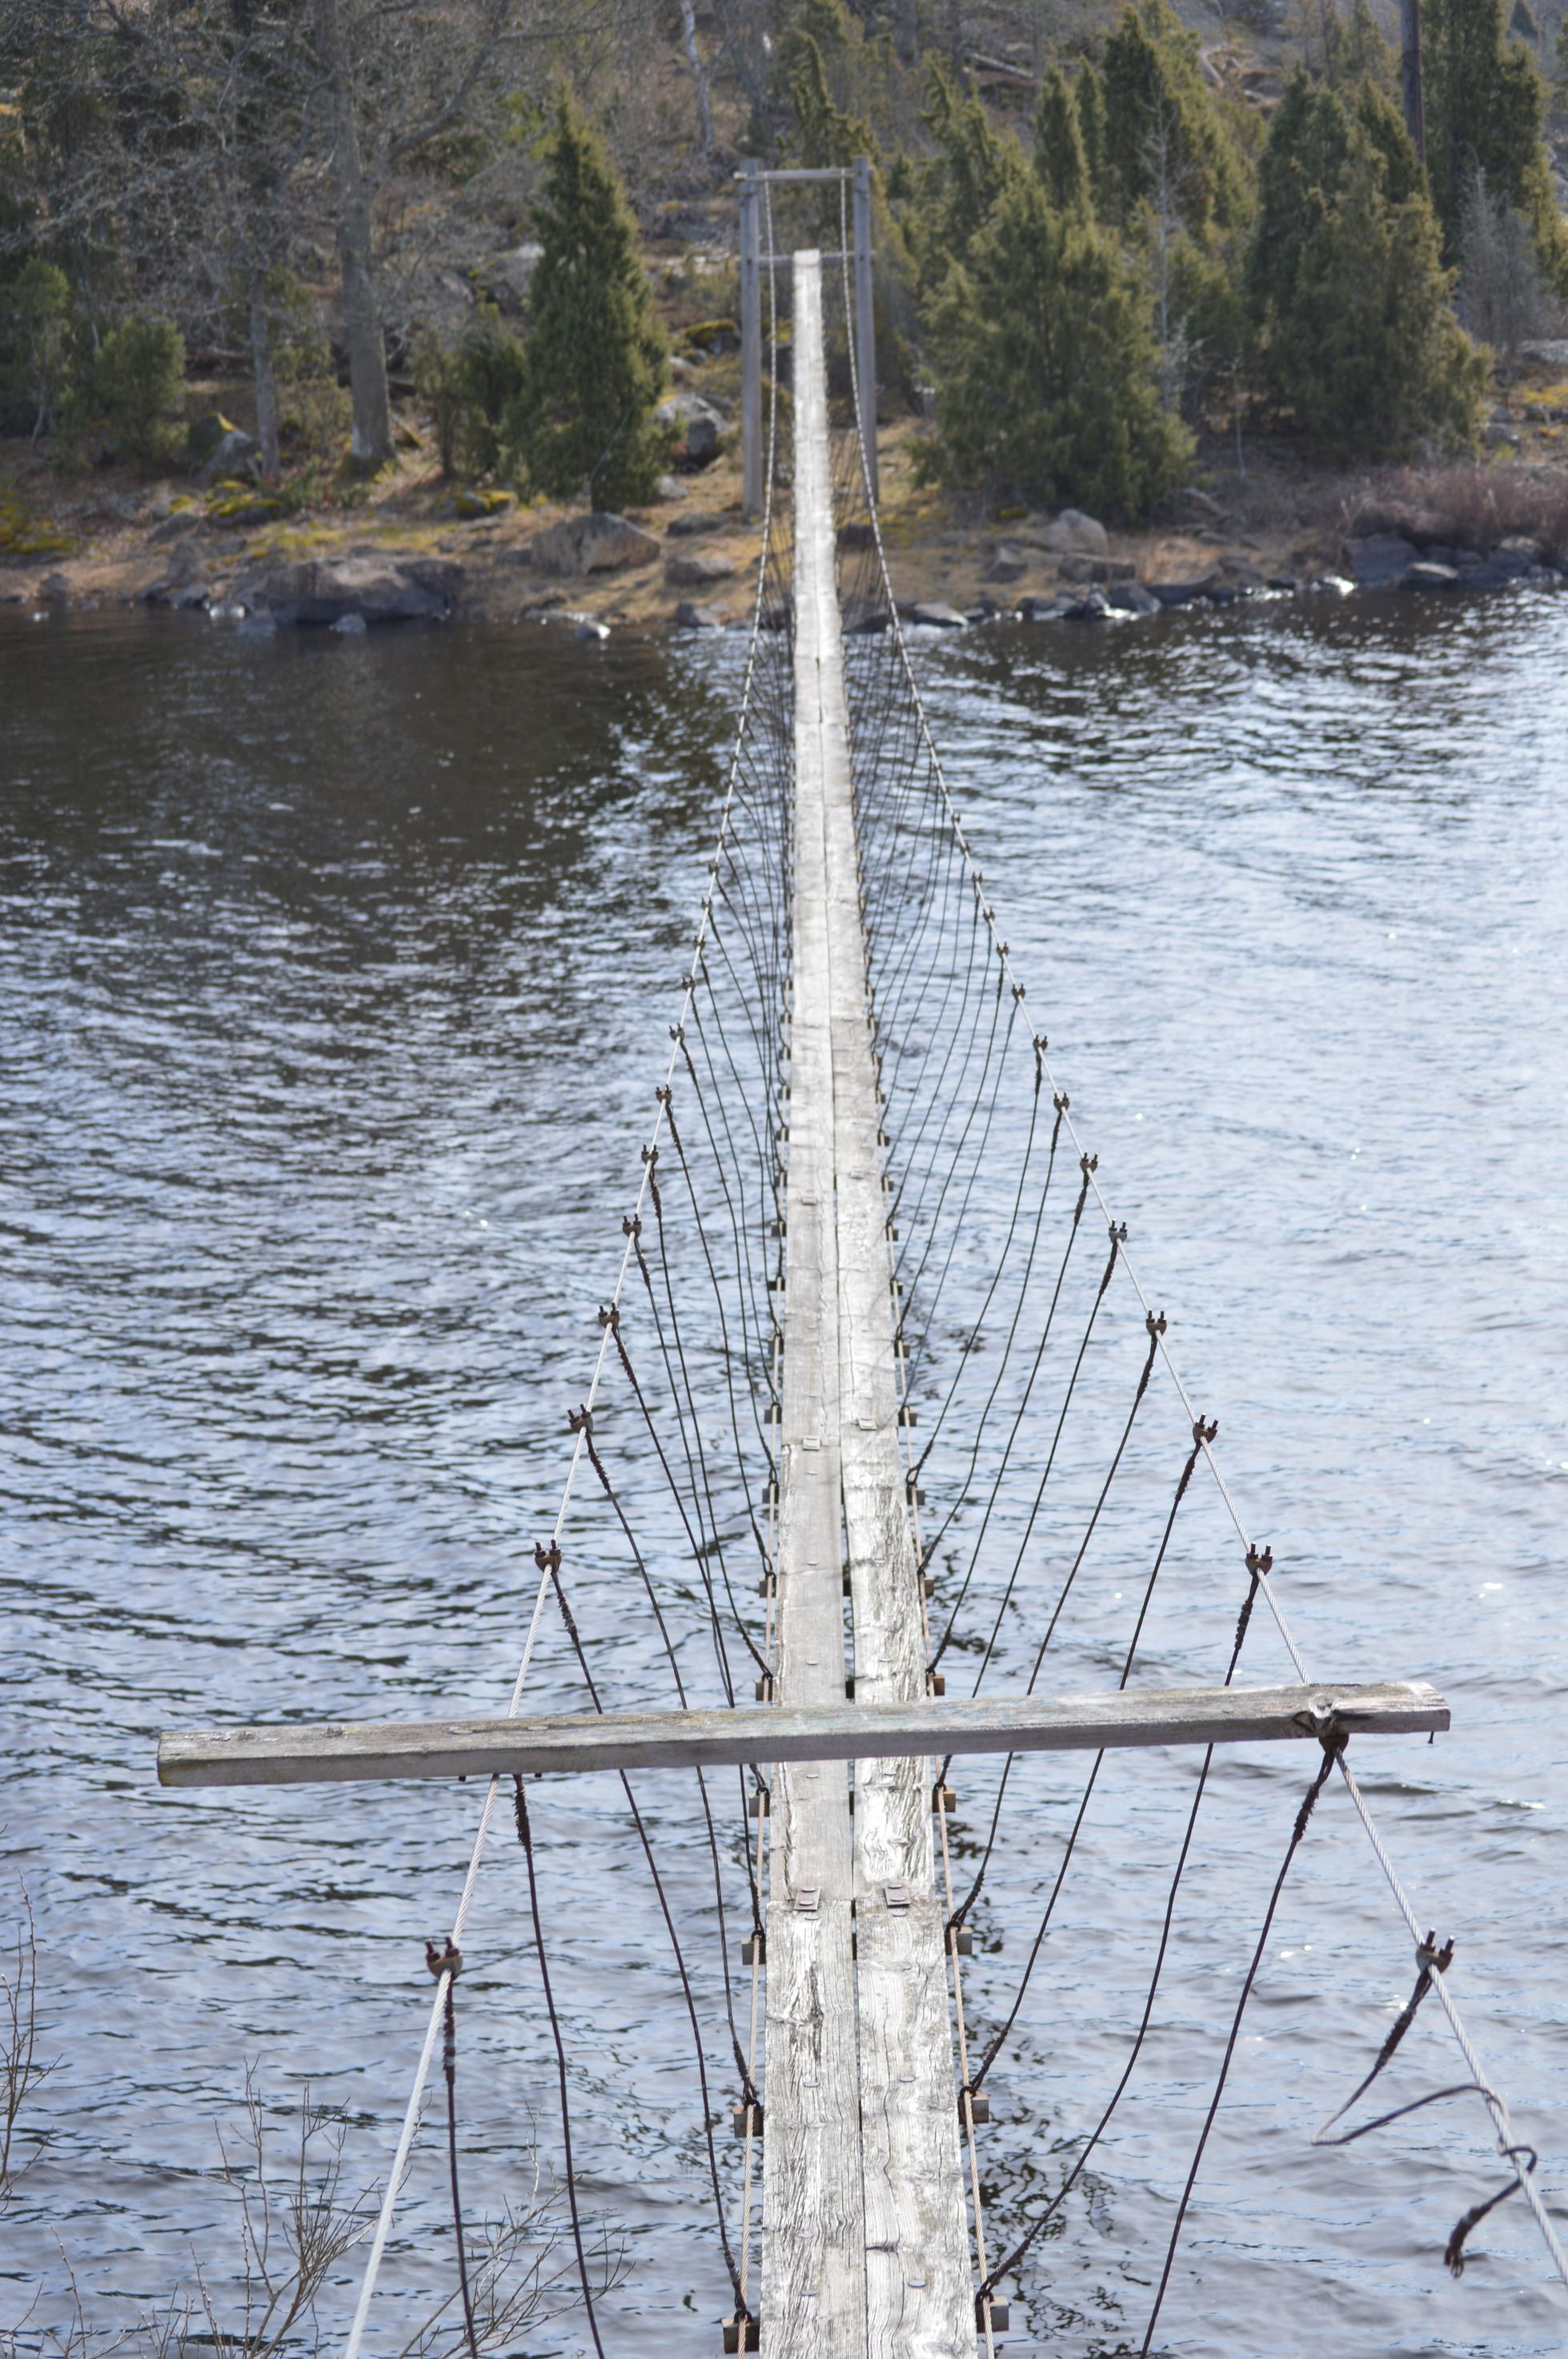 Cable bridge in Solstadström